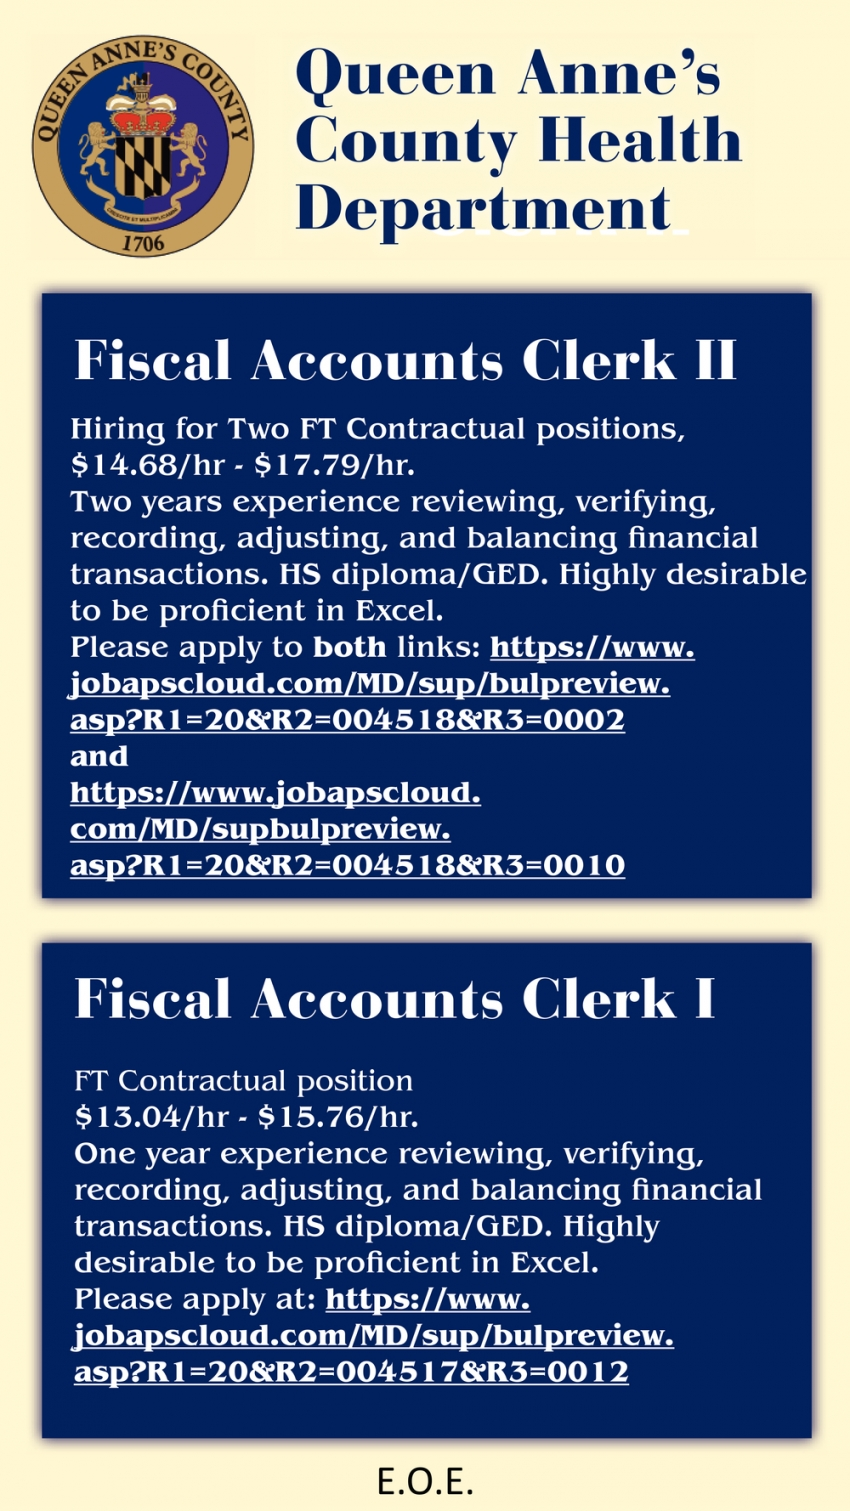 Fiscal Accounts Clerk II